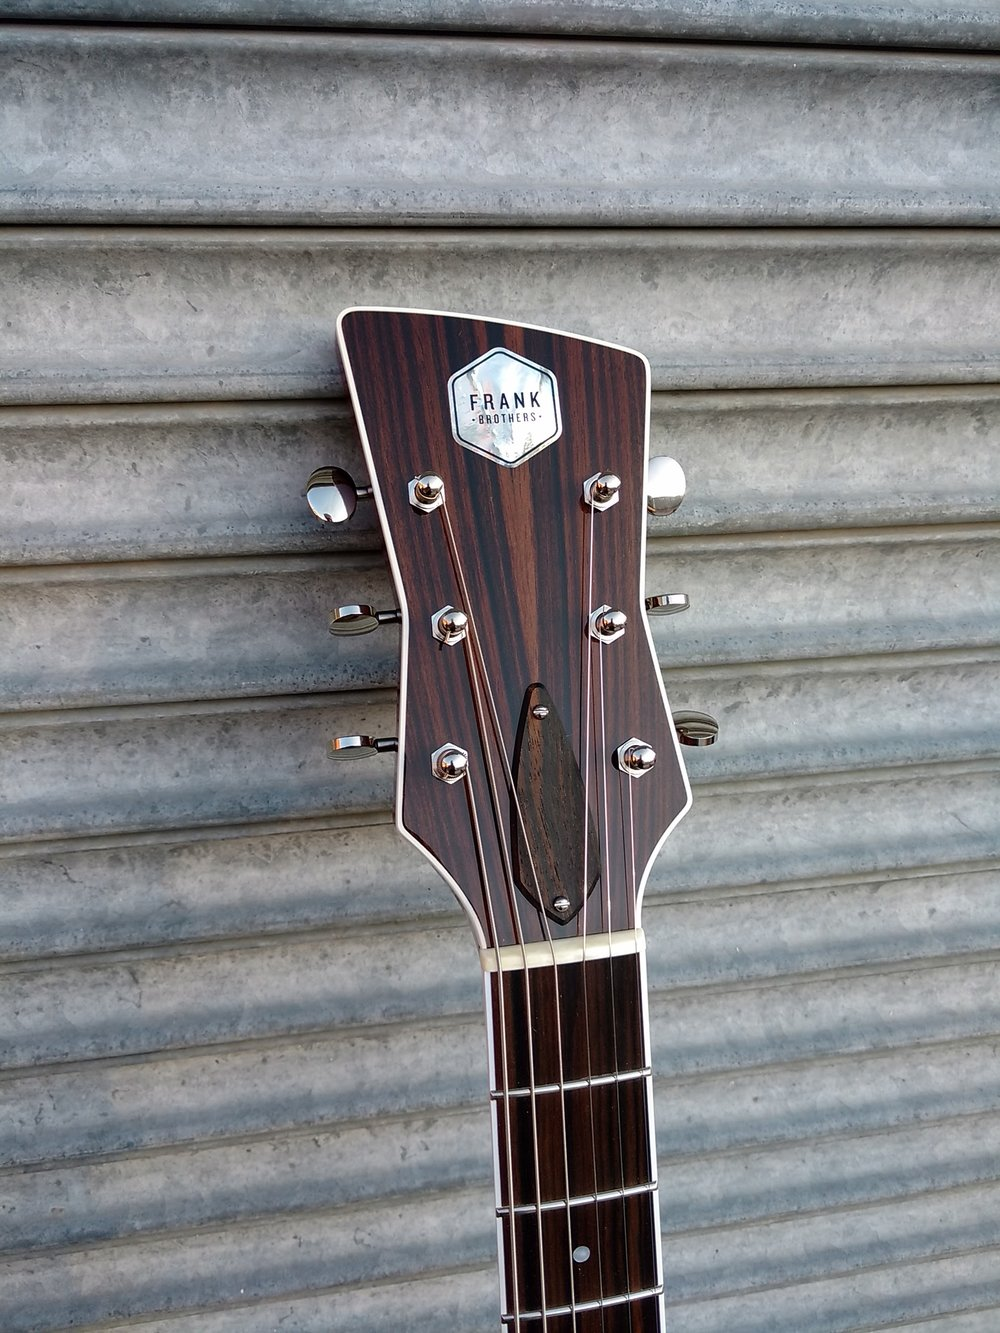 Frank Brothers Signature Model Electric Guitar Macassar Ebony original bow-tie headstock design. Custom built boutique guitars from the Frank Brothers in Toronto.